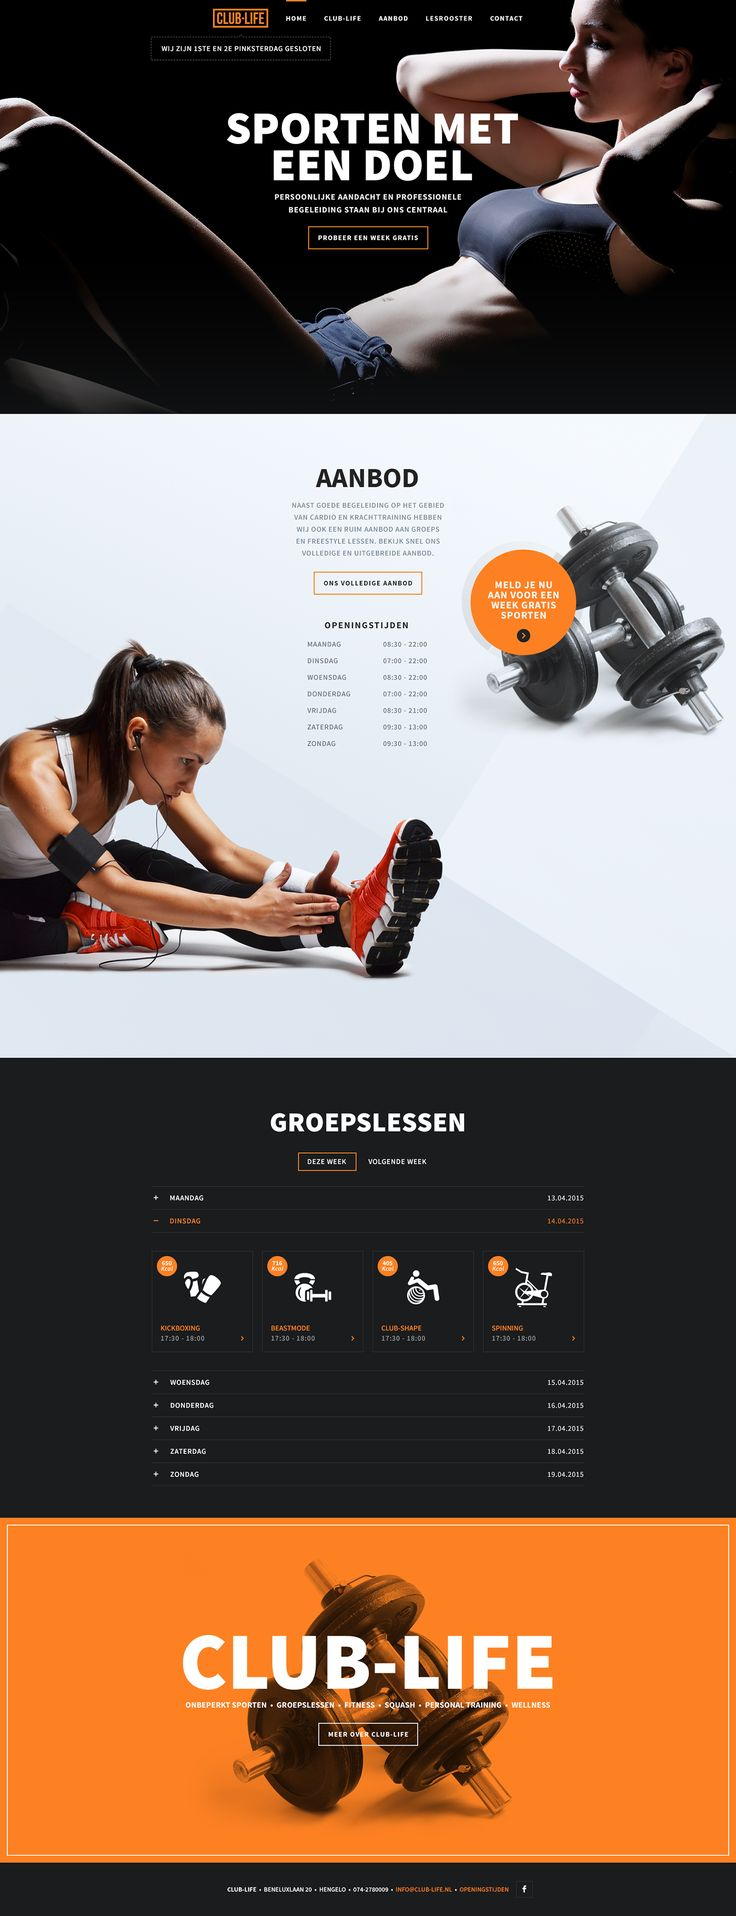 a new website design for a gym in our neighbourhood because a great gym